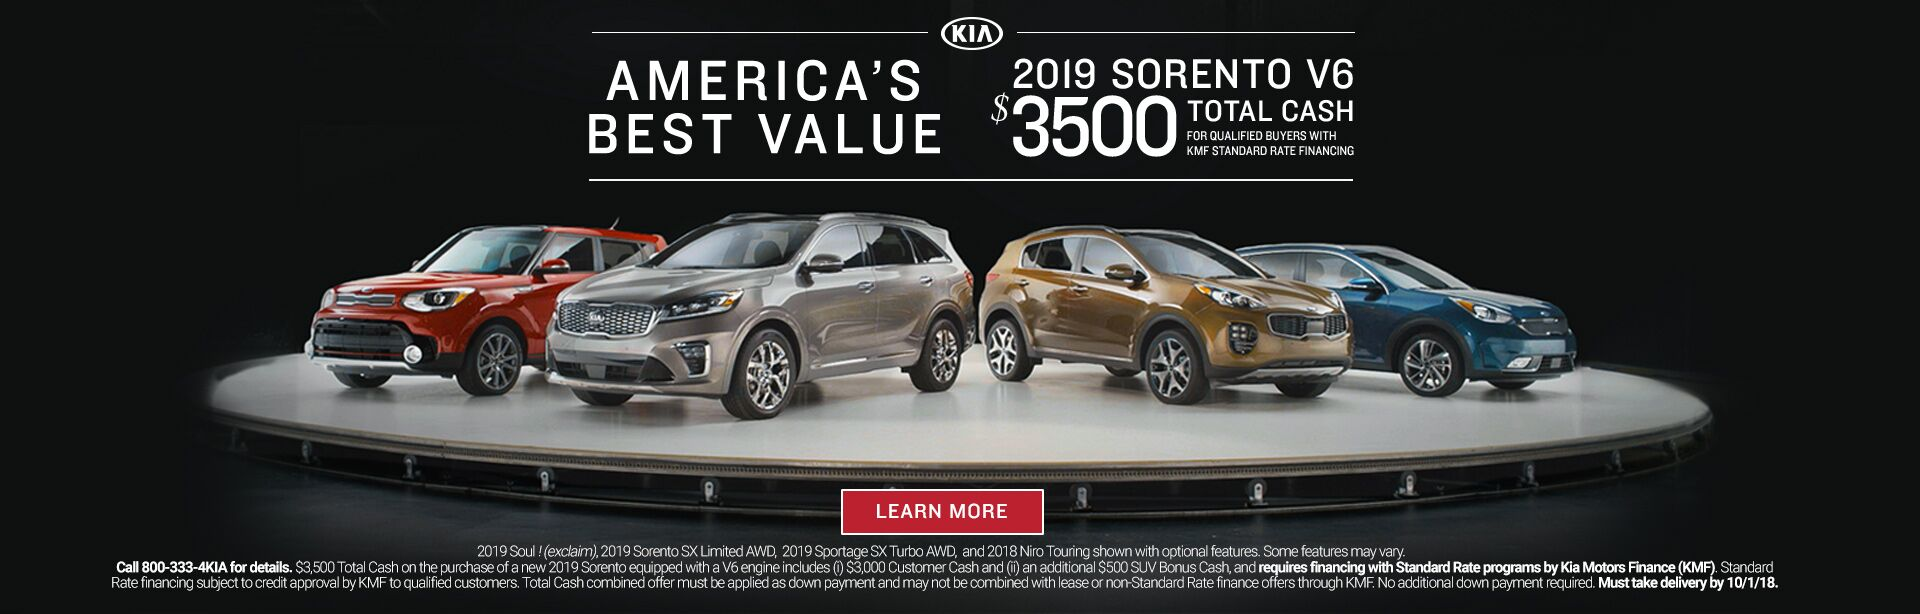 America's Best Value 2019 Sorento Hutchinson Kia